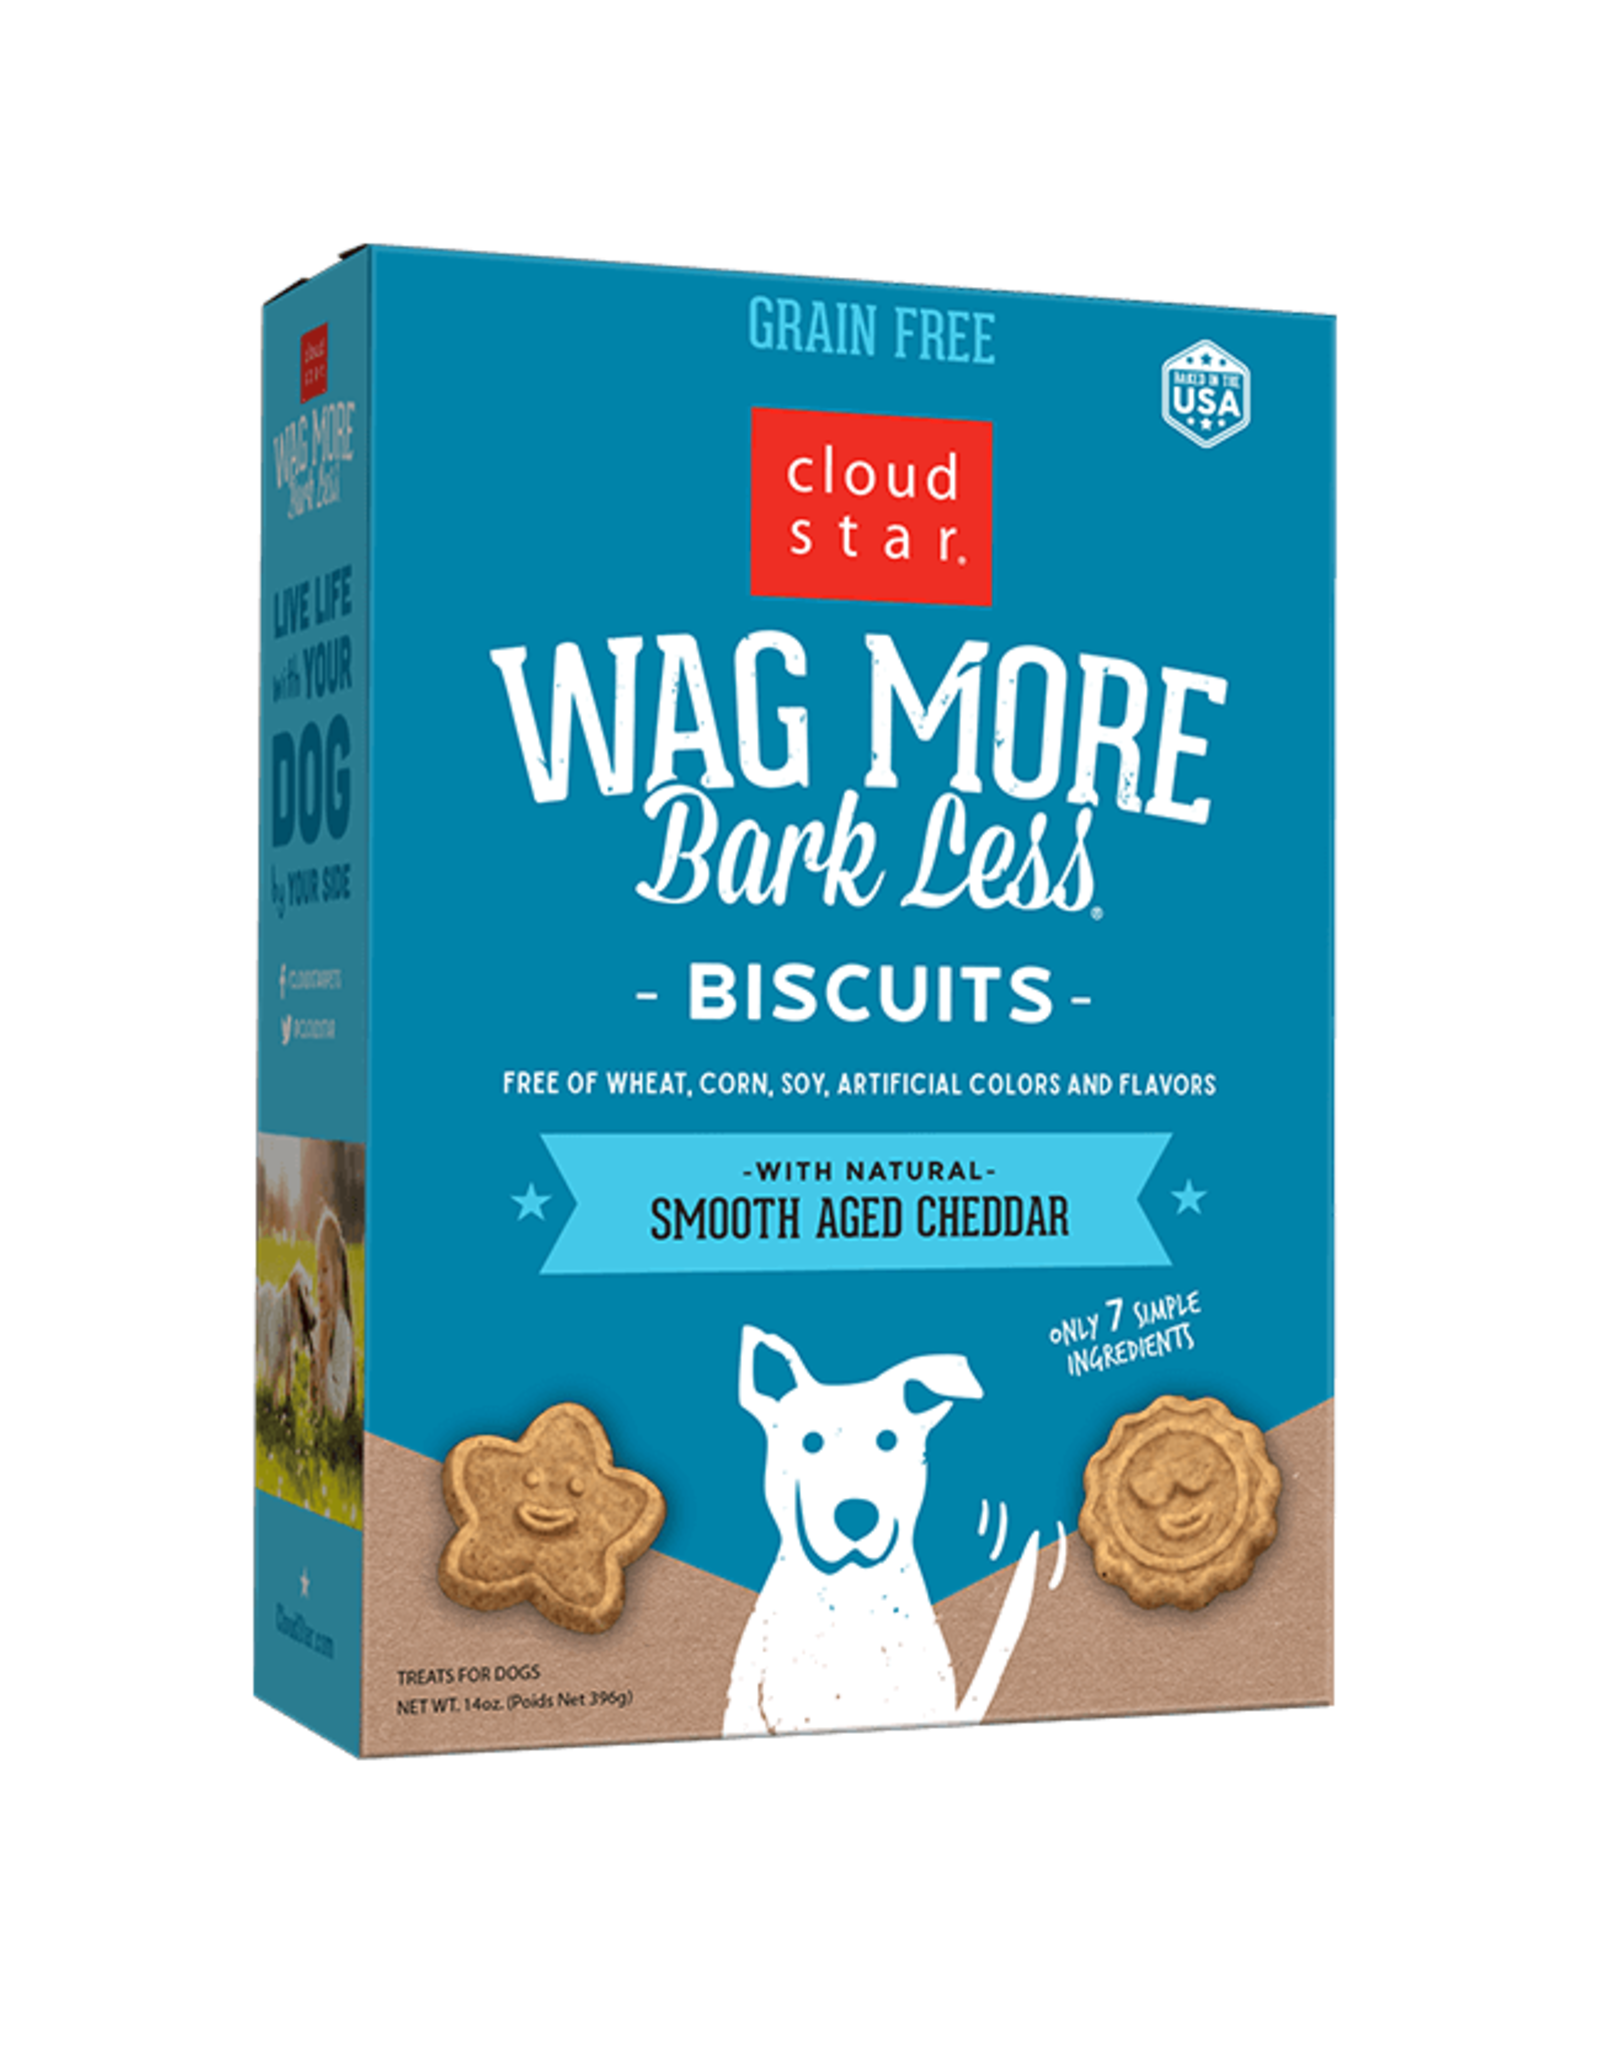 Cloud Star Wag More Bark Less Grain Free Oven Baked Dog Biscuits with Smooth Aged Cheddar 14oz